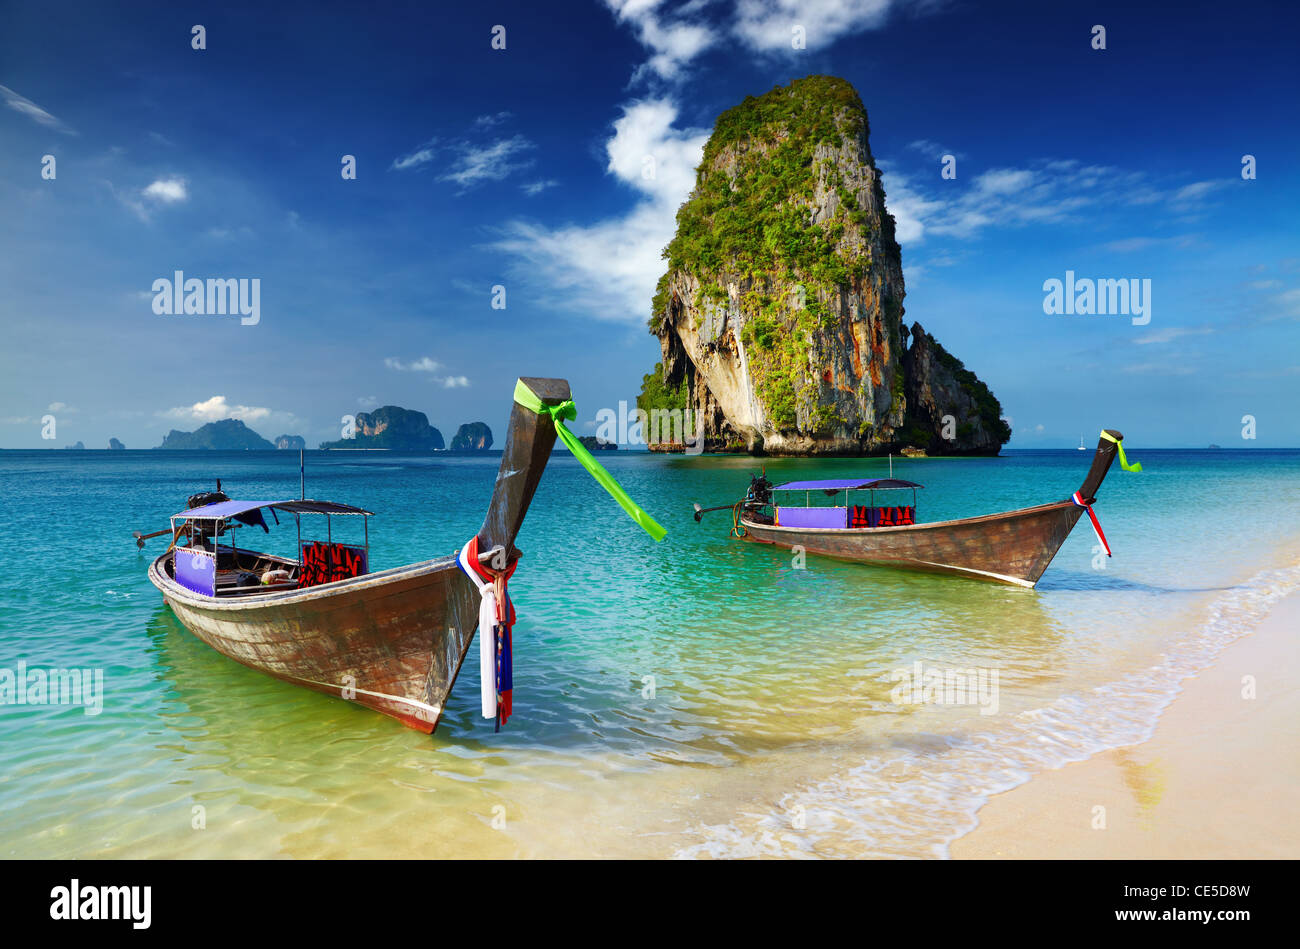 Tropical beach, longtail boats, Andaman Sea, Thailand - Stock Image